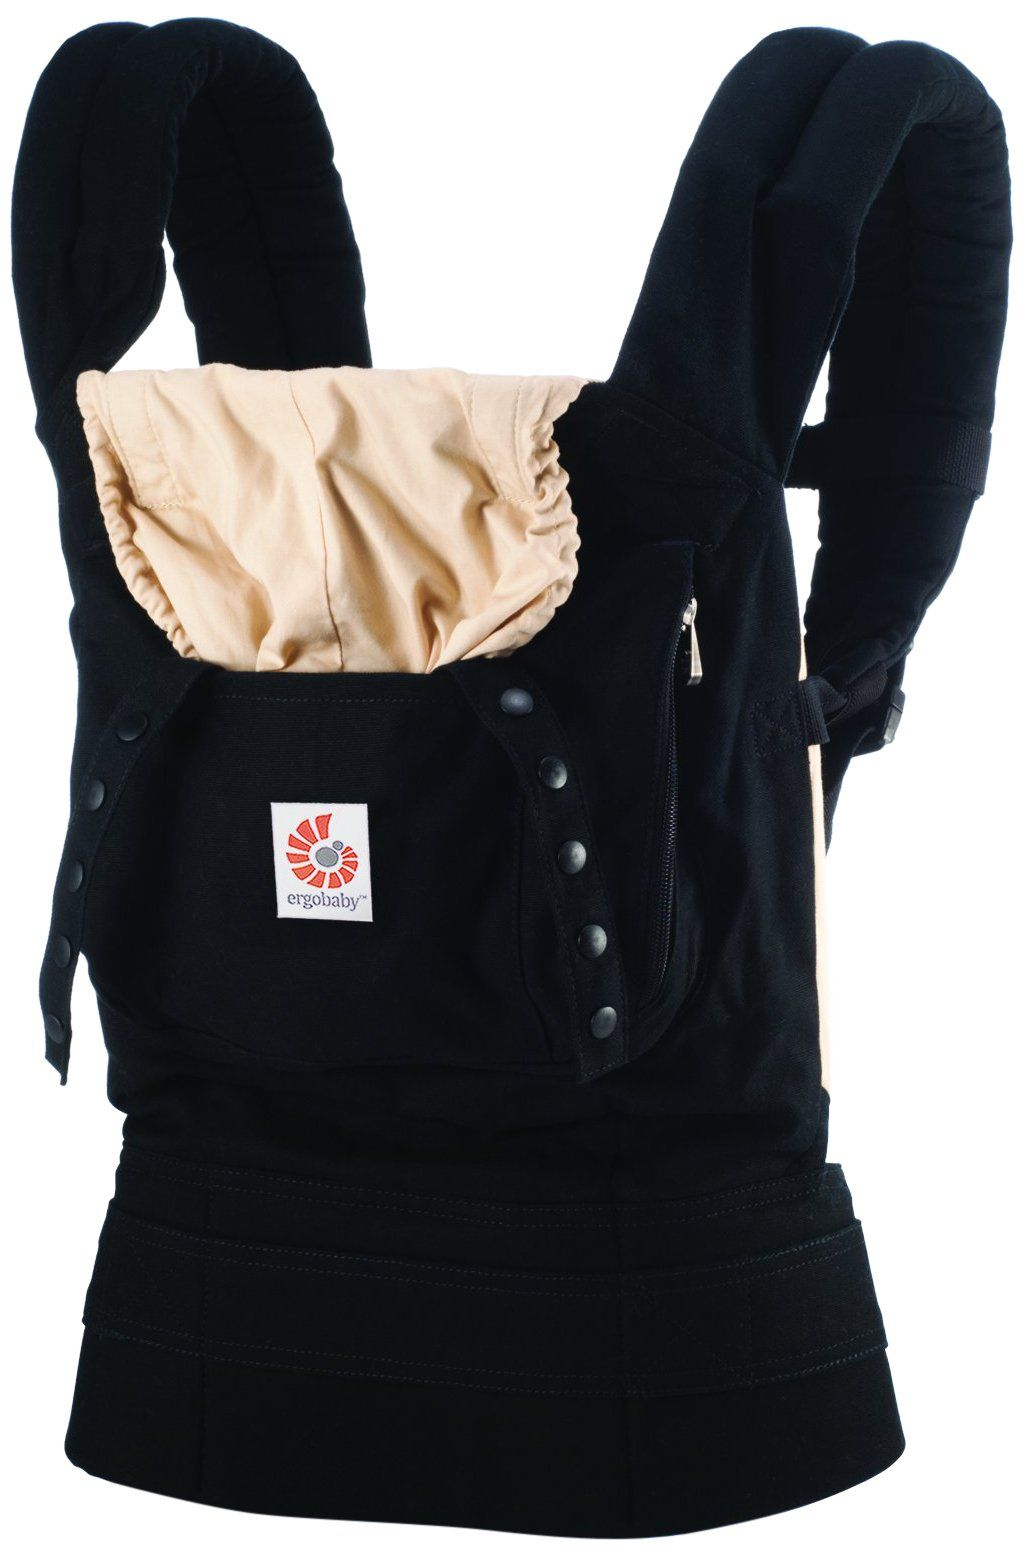 07656a3e667 Ergobaby Original Baby Carrier - Black Camel - One Size